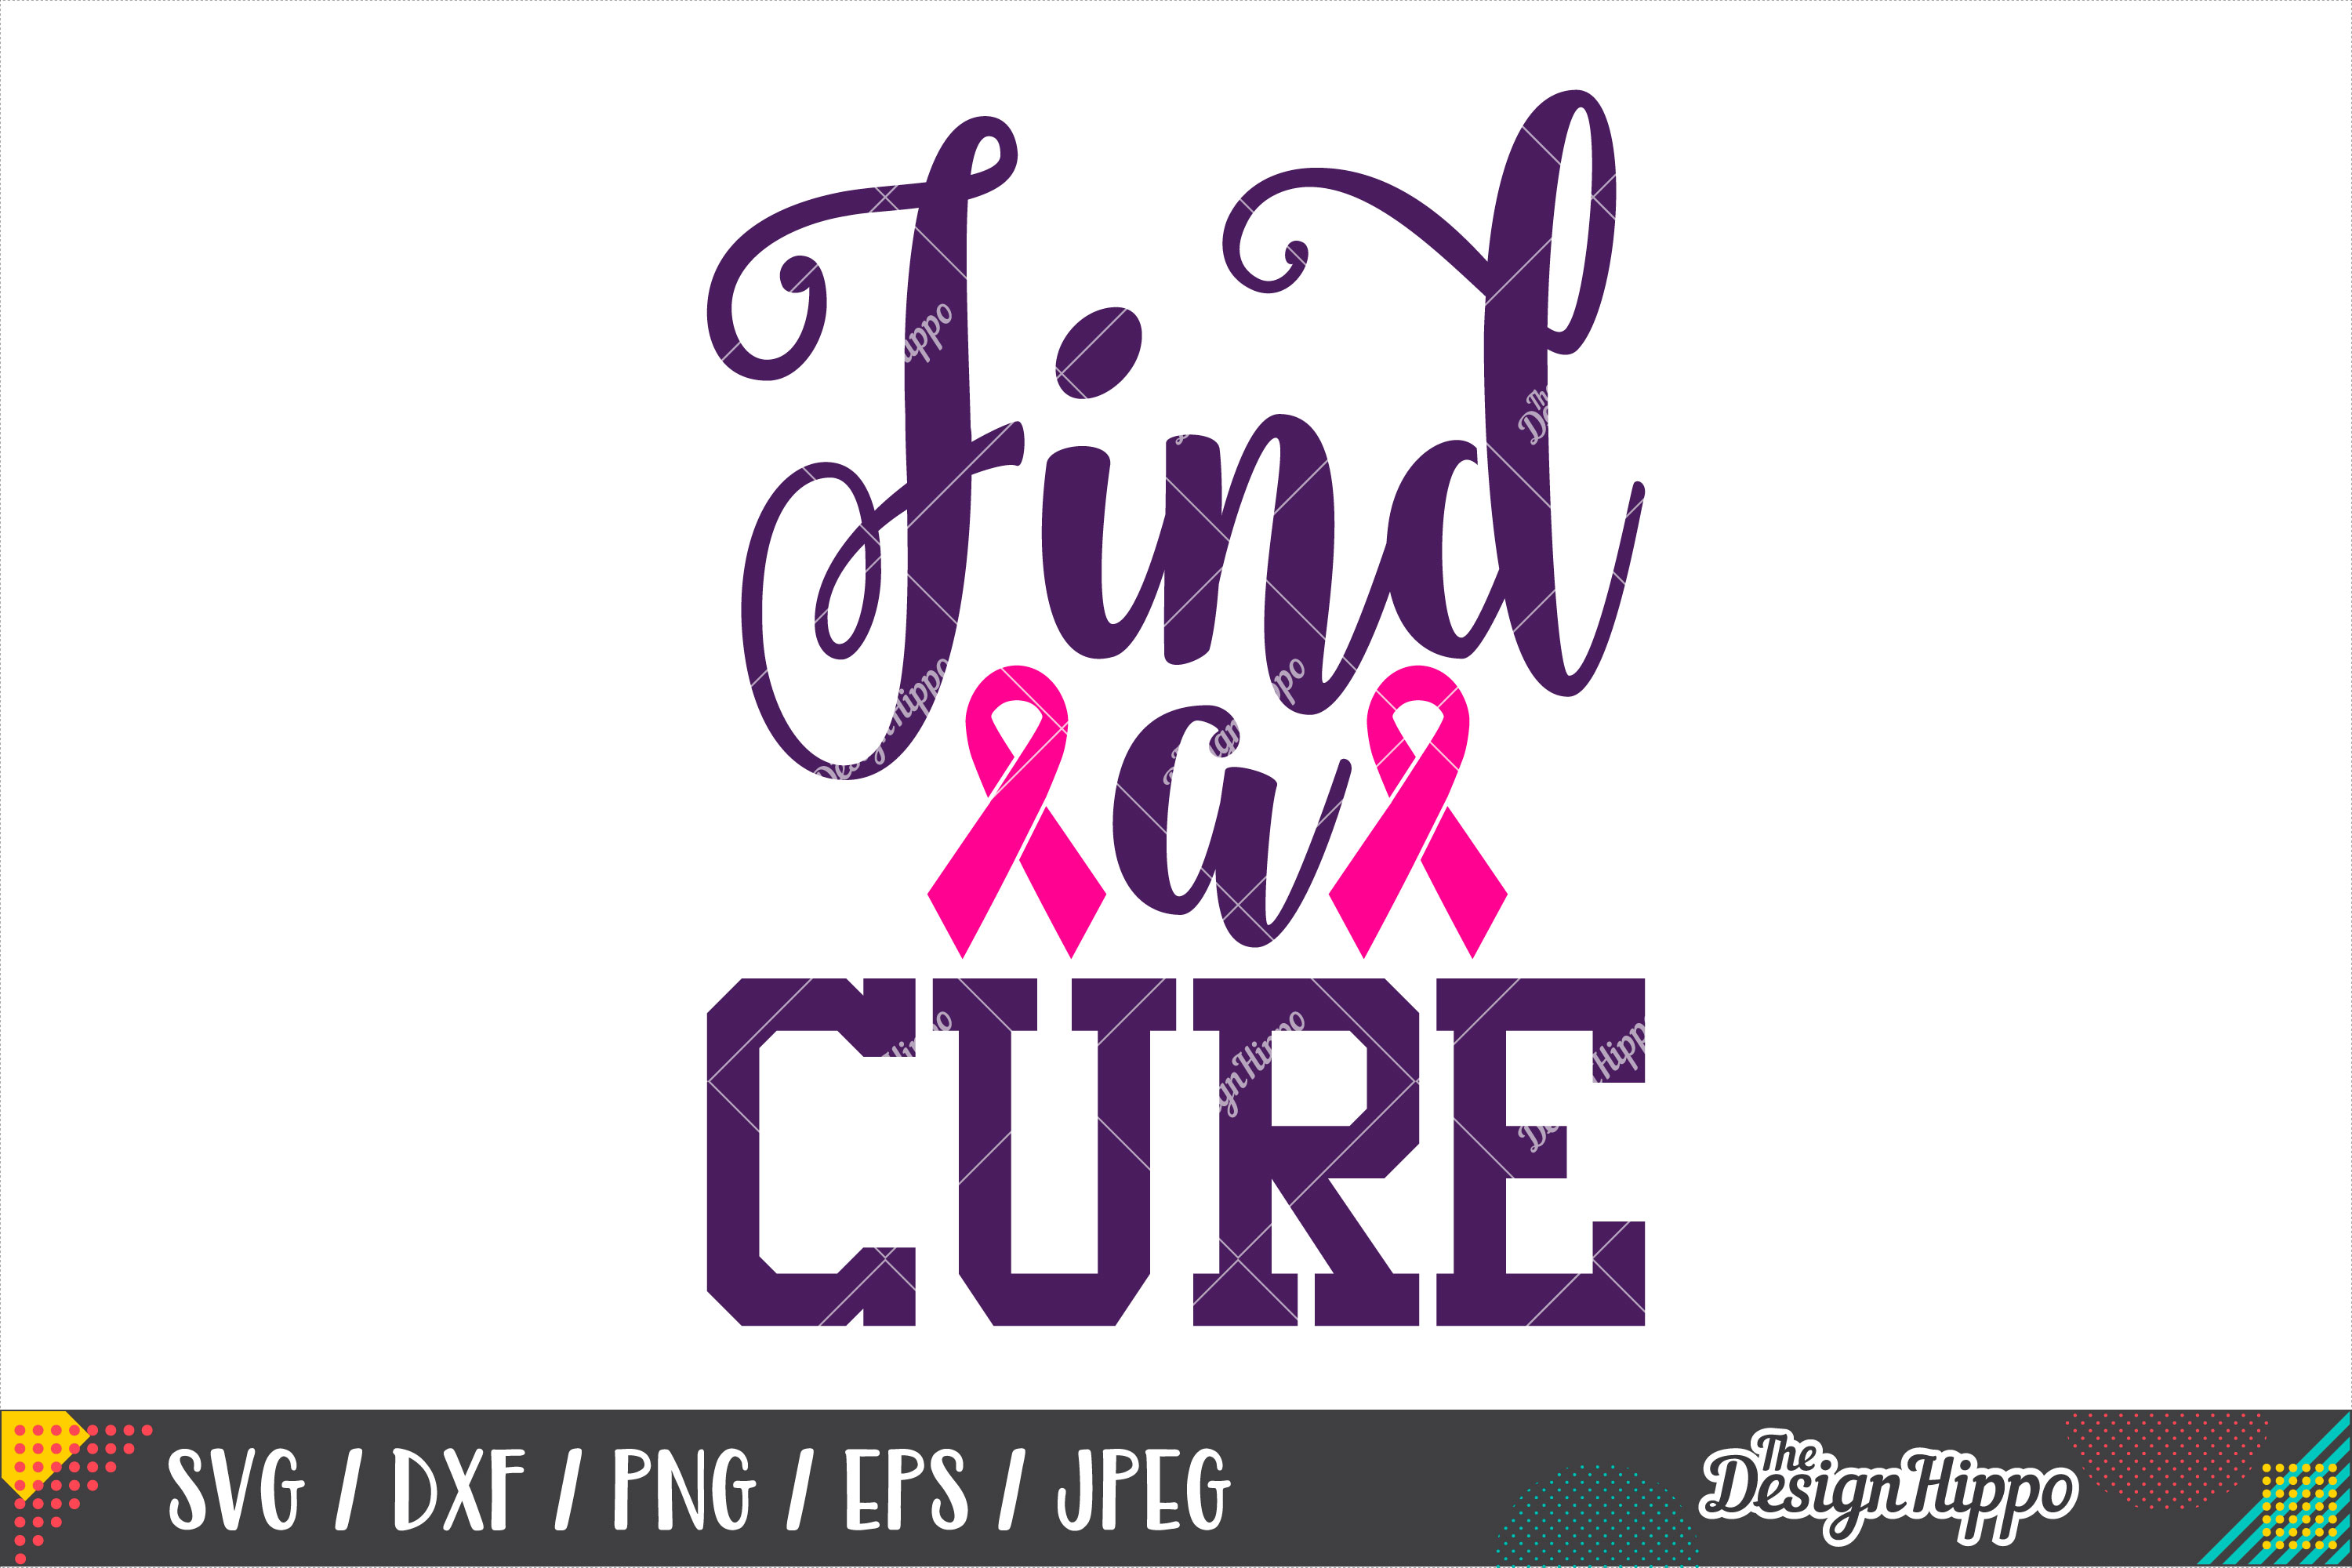 Find A Cure SVG, Breast Cancer Awareness SVG DXF PNG Files example image 1